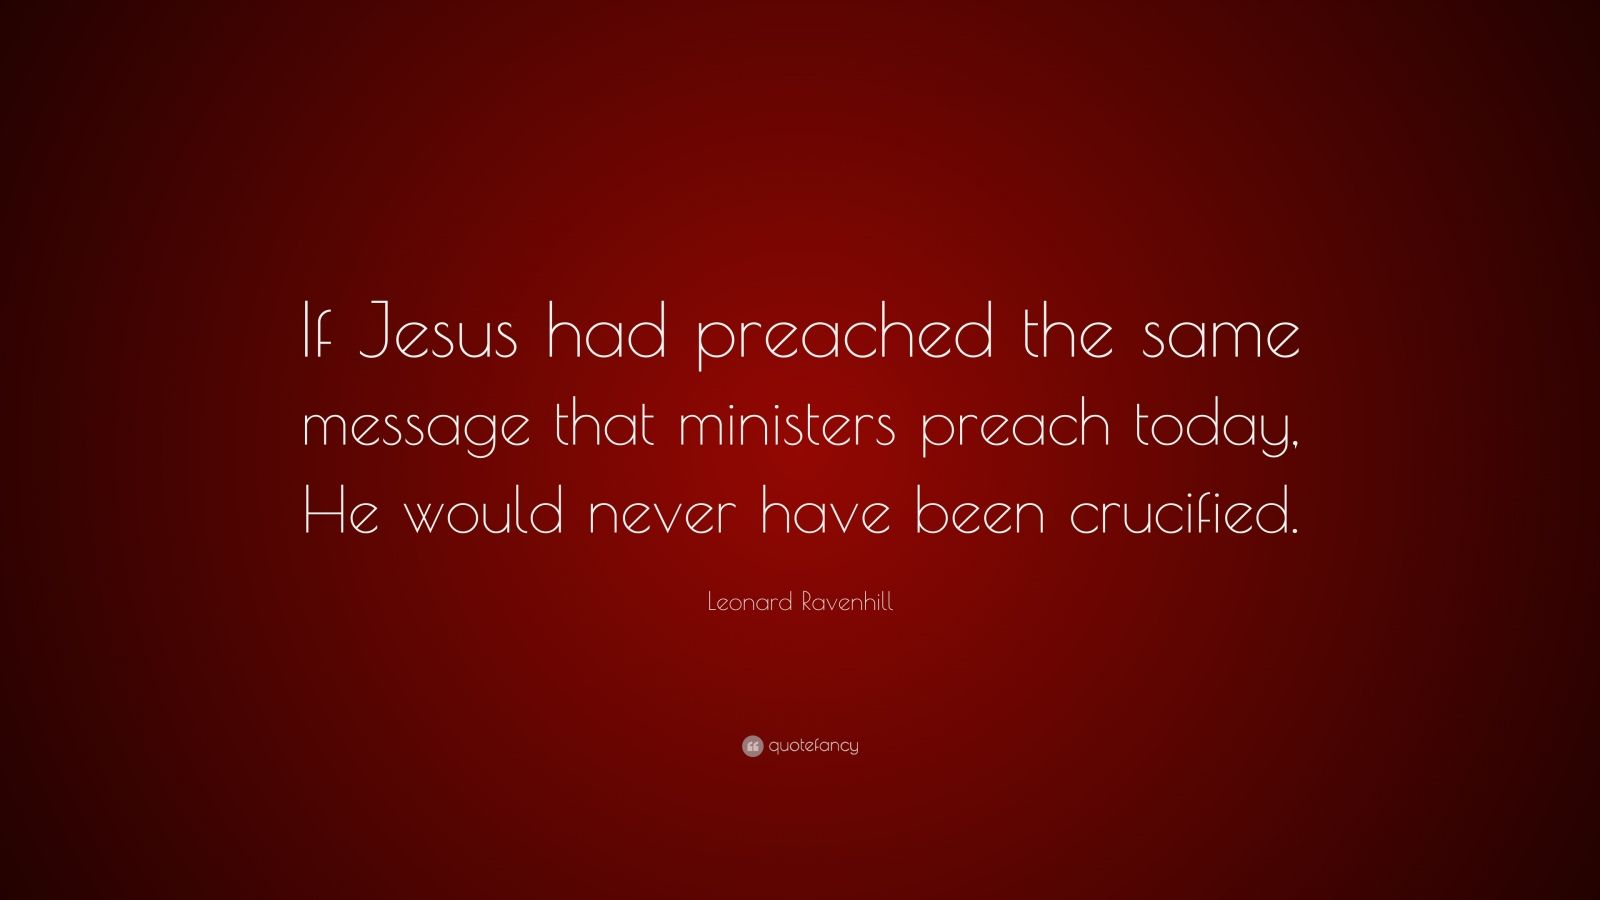 """Leonard Ravenhill Quote: """"If Jesus had preached the same message that ministers preach today, He would never have been crucified."""""""